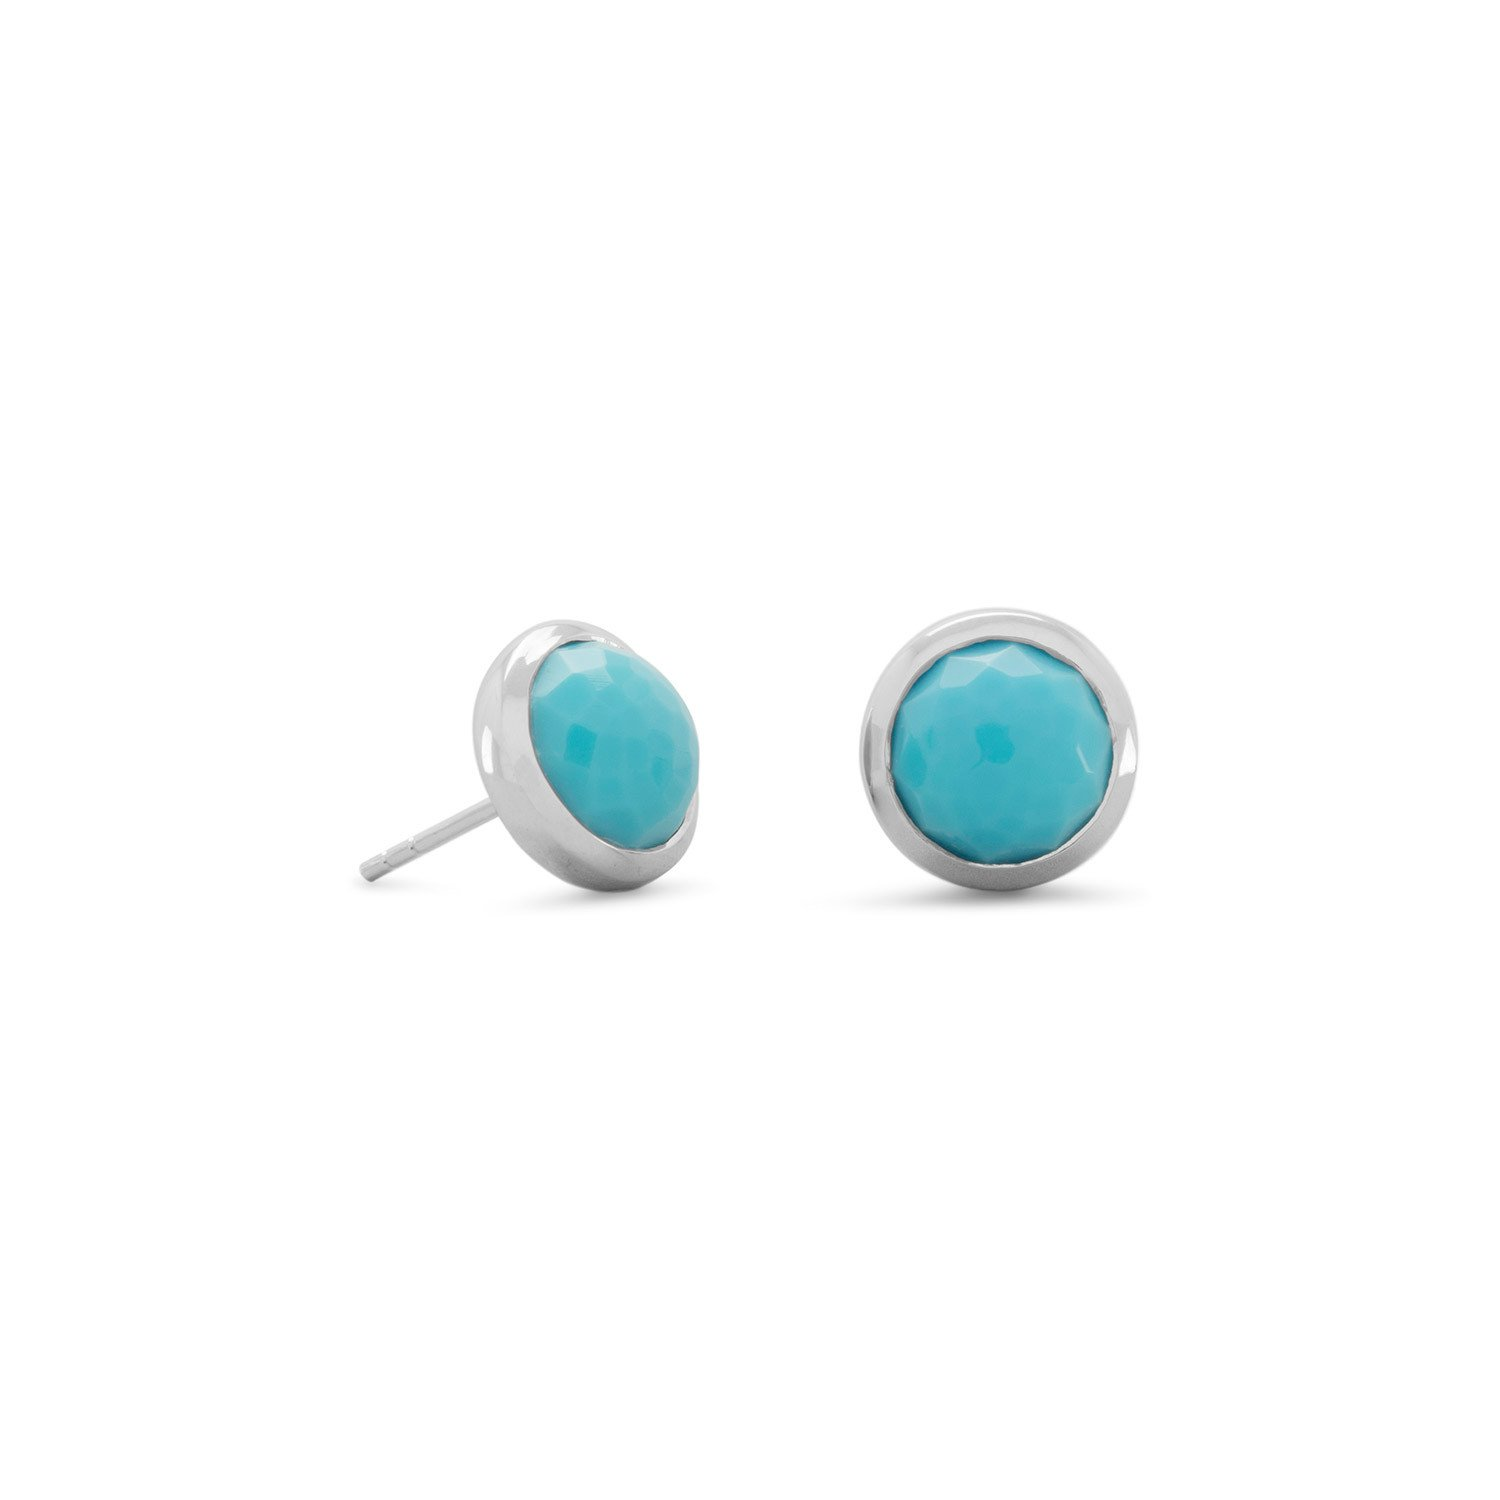 Round Freeform Faceted Turquoise Earrings